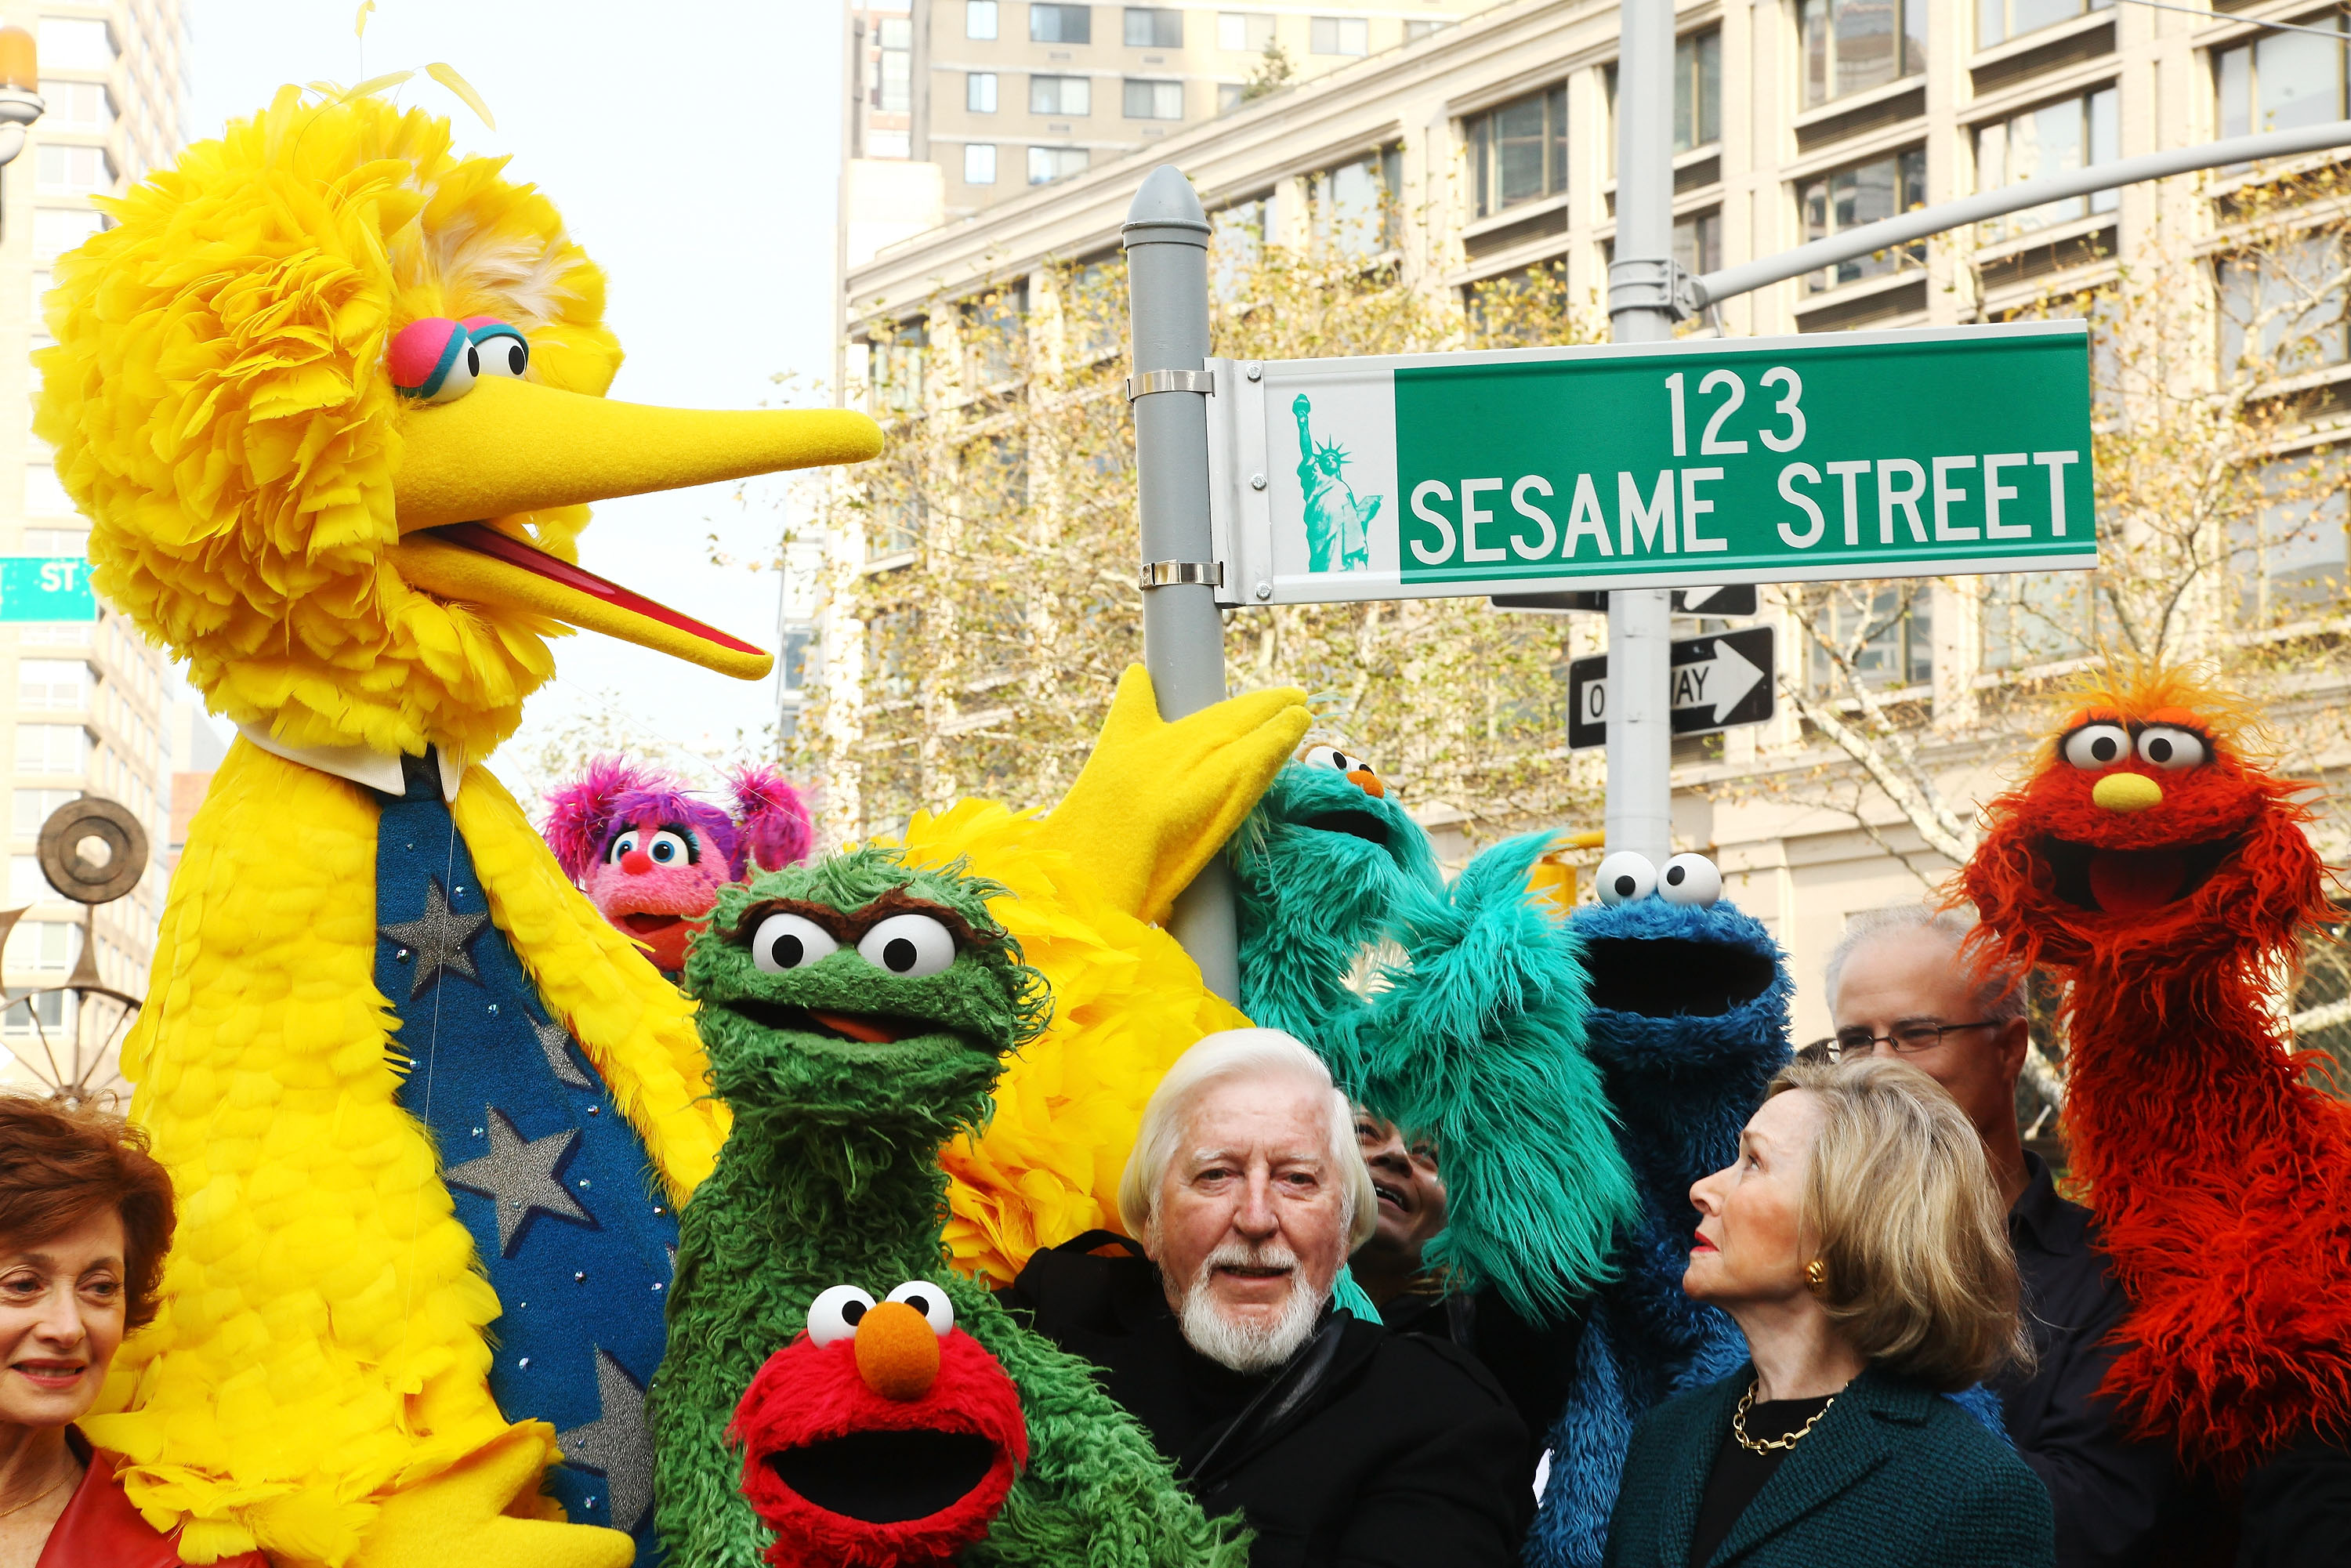 "NEW YORK - NOVEMBER 09: (L-R) Puppeteer Caroll Spinney, Sesame Street co-founder and TV producer Joan Ganz Cooney, and Sesame Street cast members pose under a ""123 Sesame Street"" sign at the ""Sesame Street"" 40th Anniversary temporary street renaming in Dante Park on November 9, 2009 in New York City. (Photo by Astrid Stawiarz/Getty Images)"